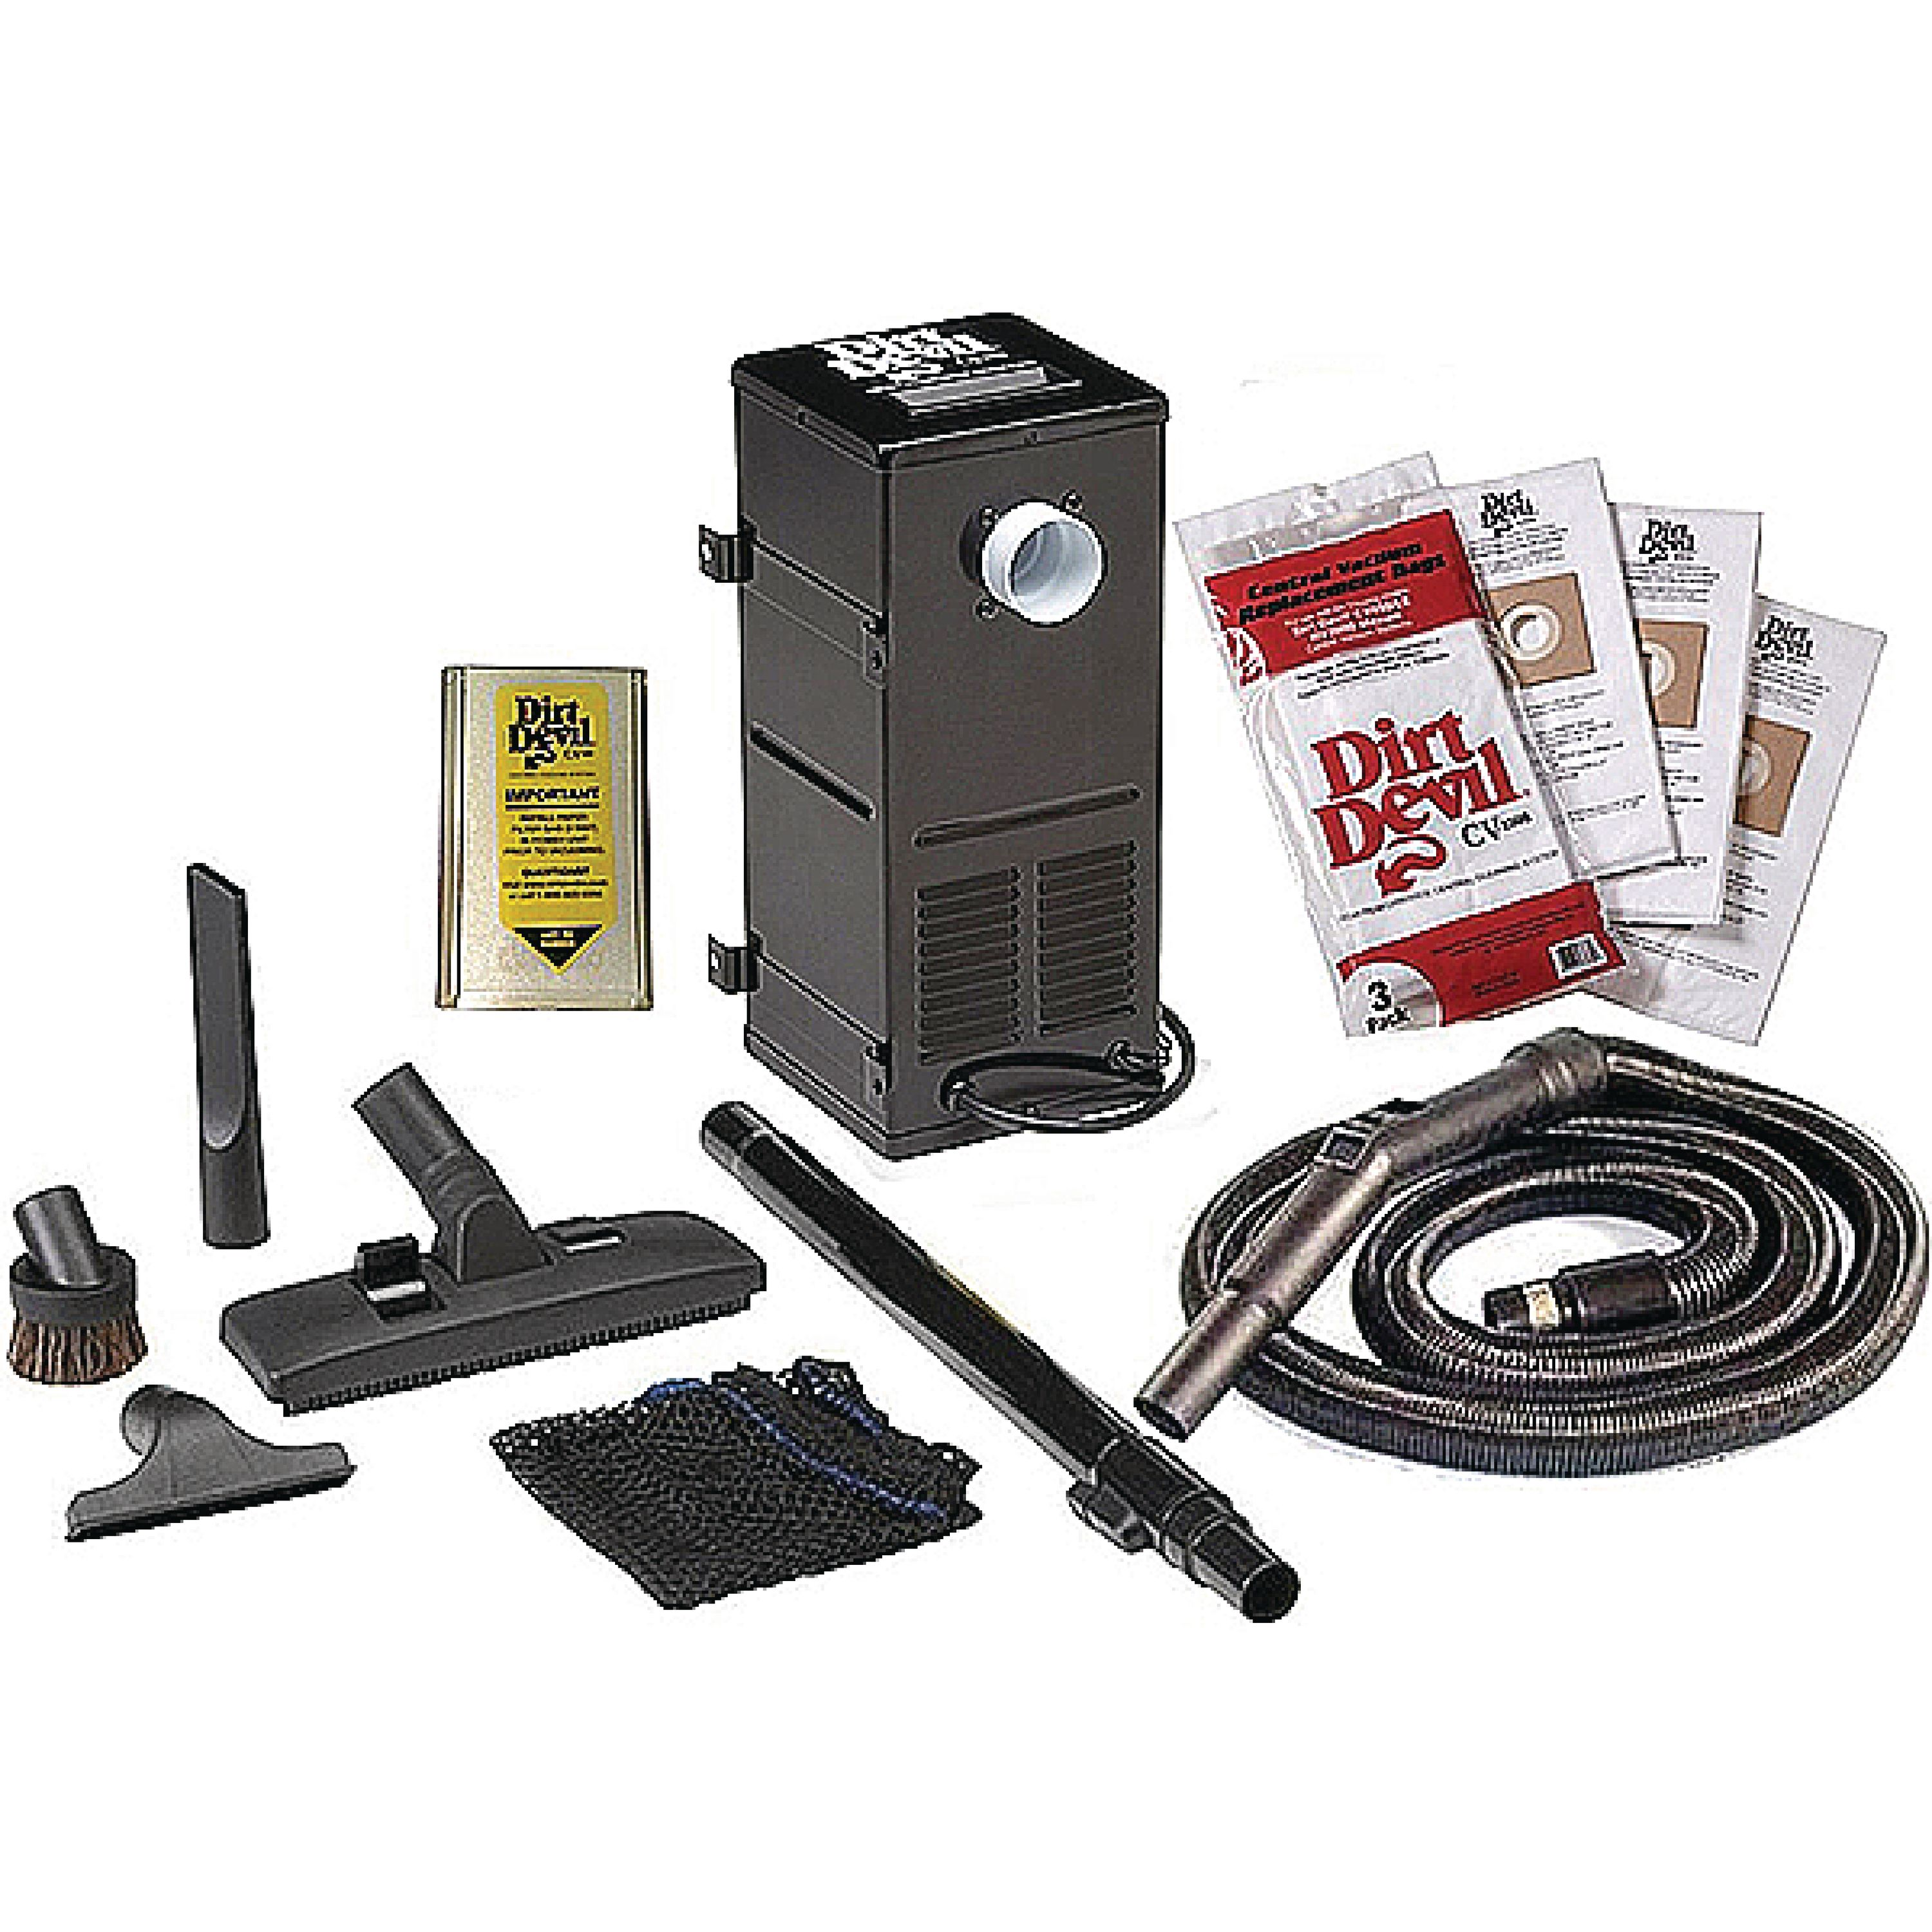 Dirt Devil 9880 All-In-One Central RV Vacuum System